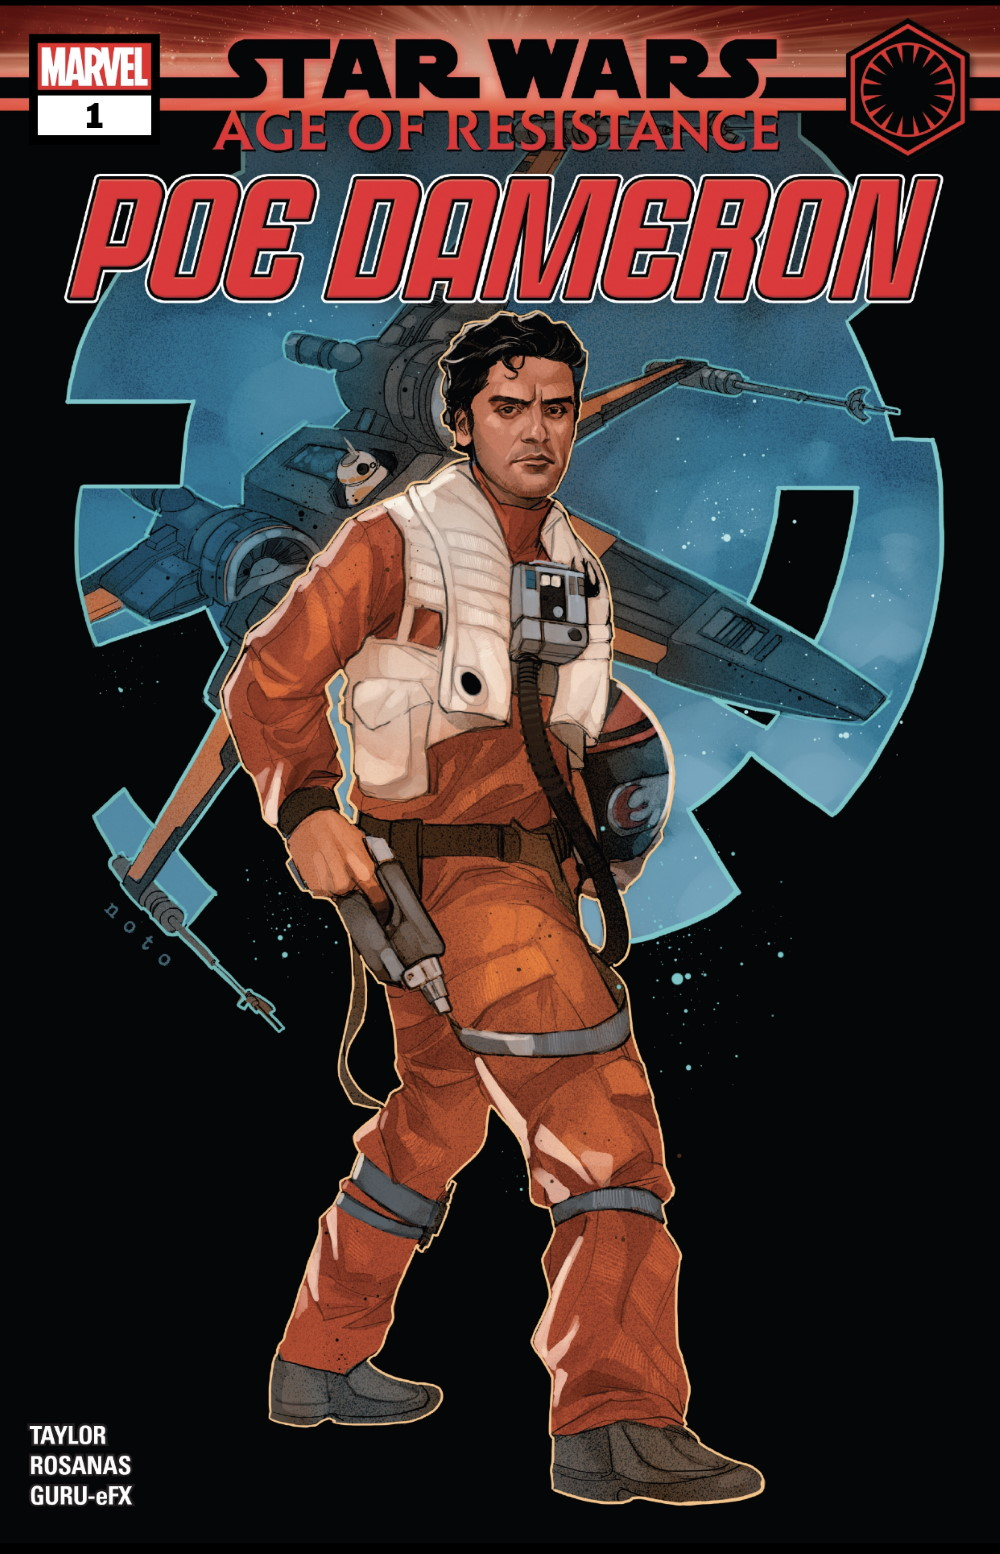 Age of Resistance - Poe Dameron #1 Cover